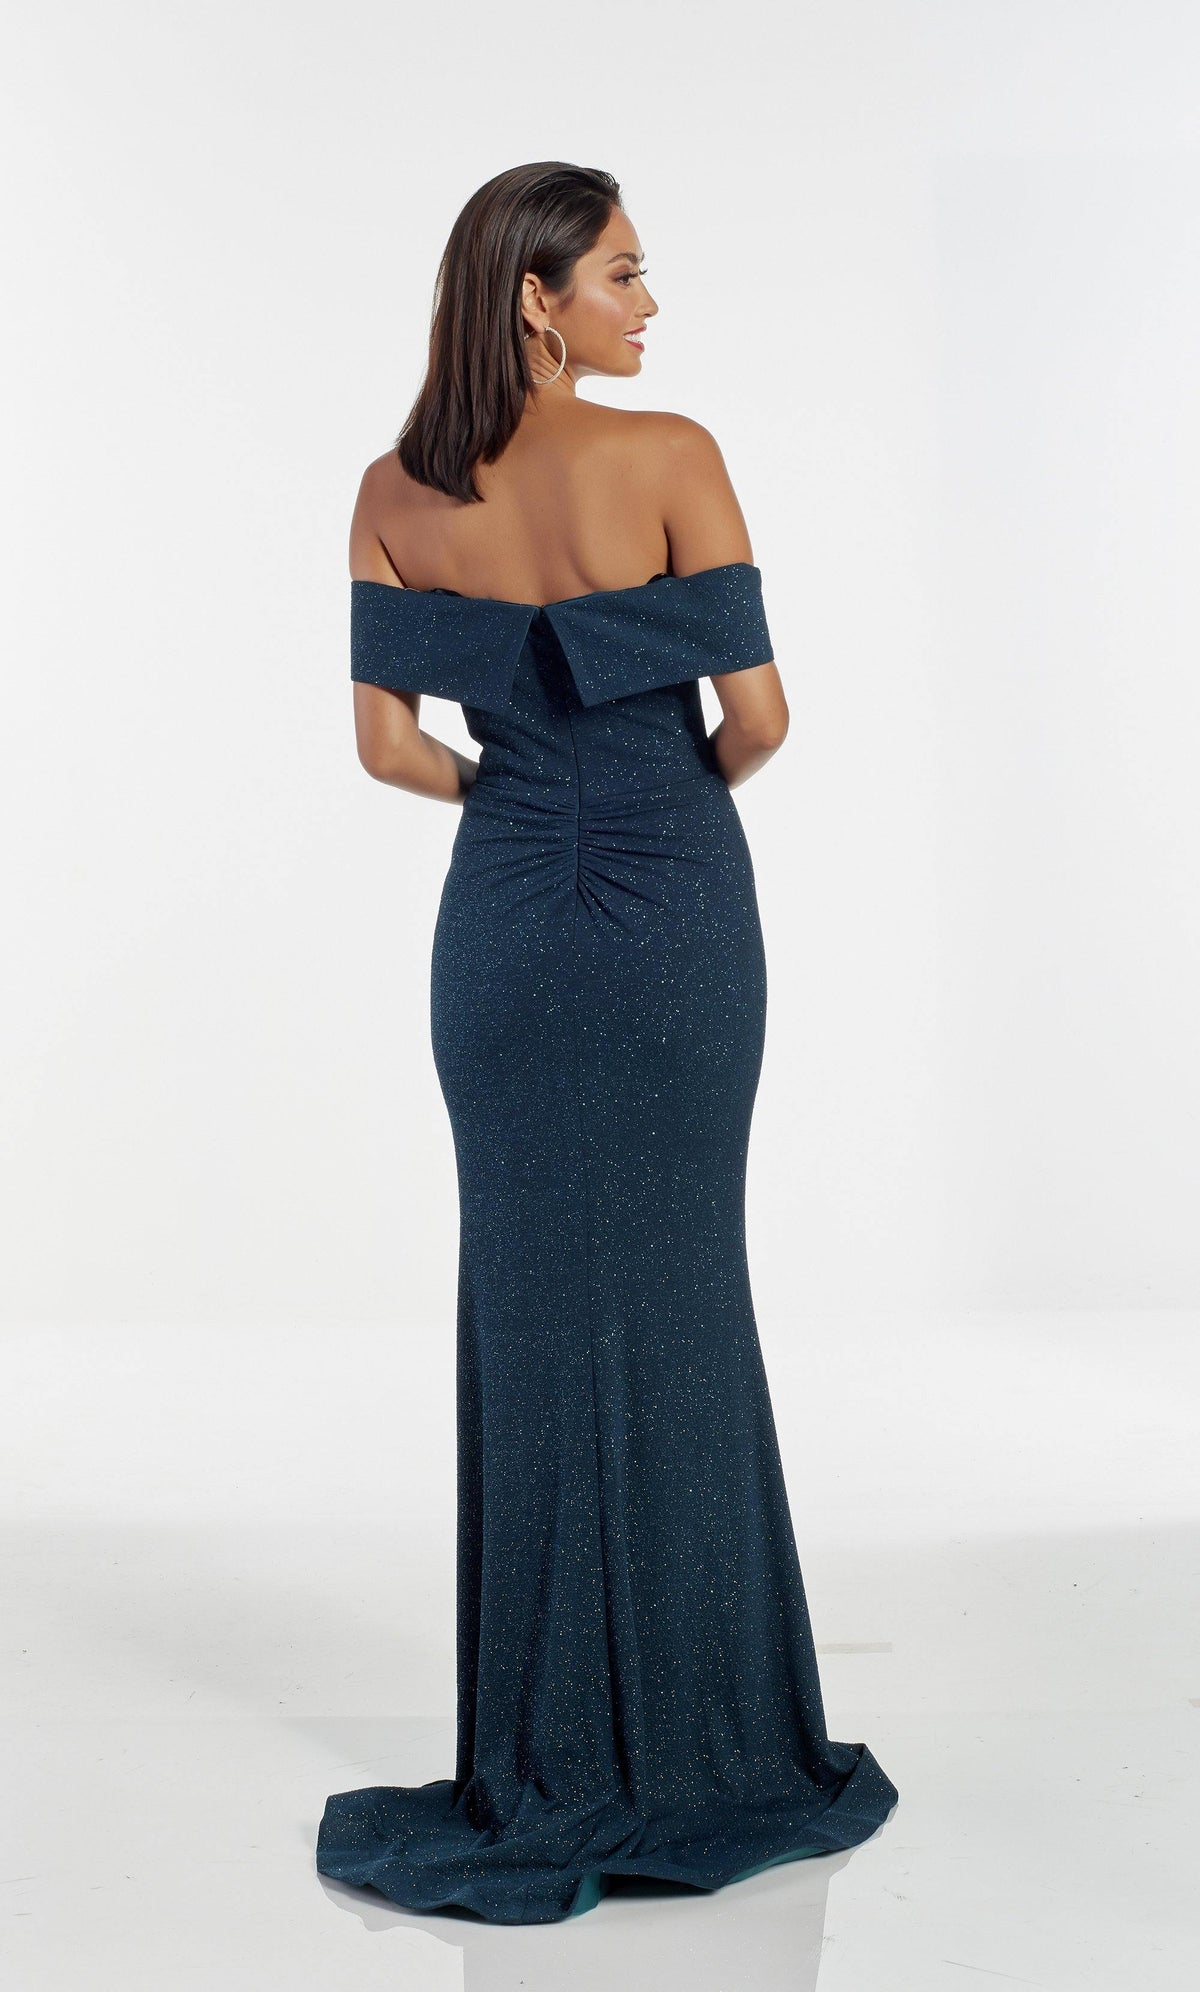 Peacock glitter jersey off the shoulder evening dress with a ruched back and train